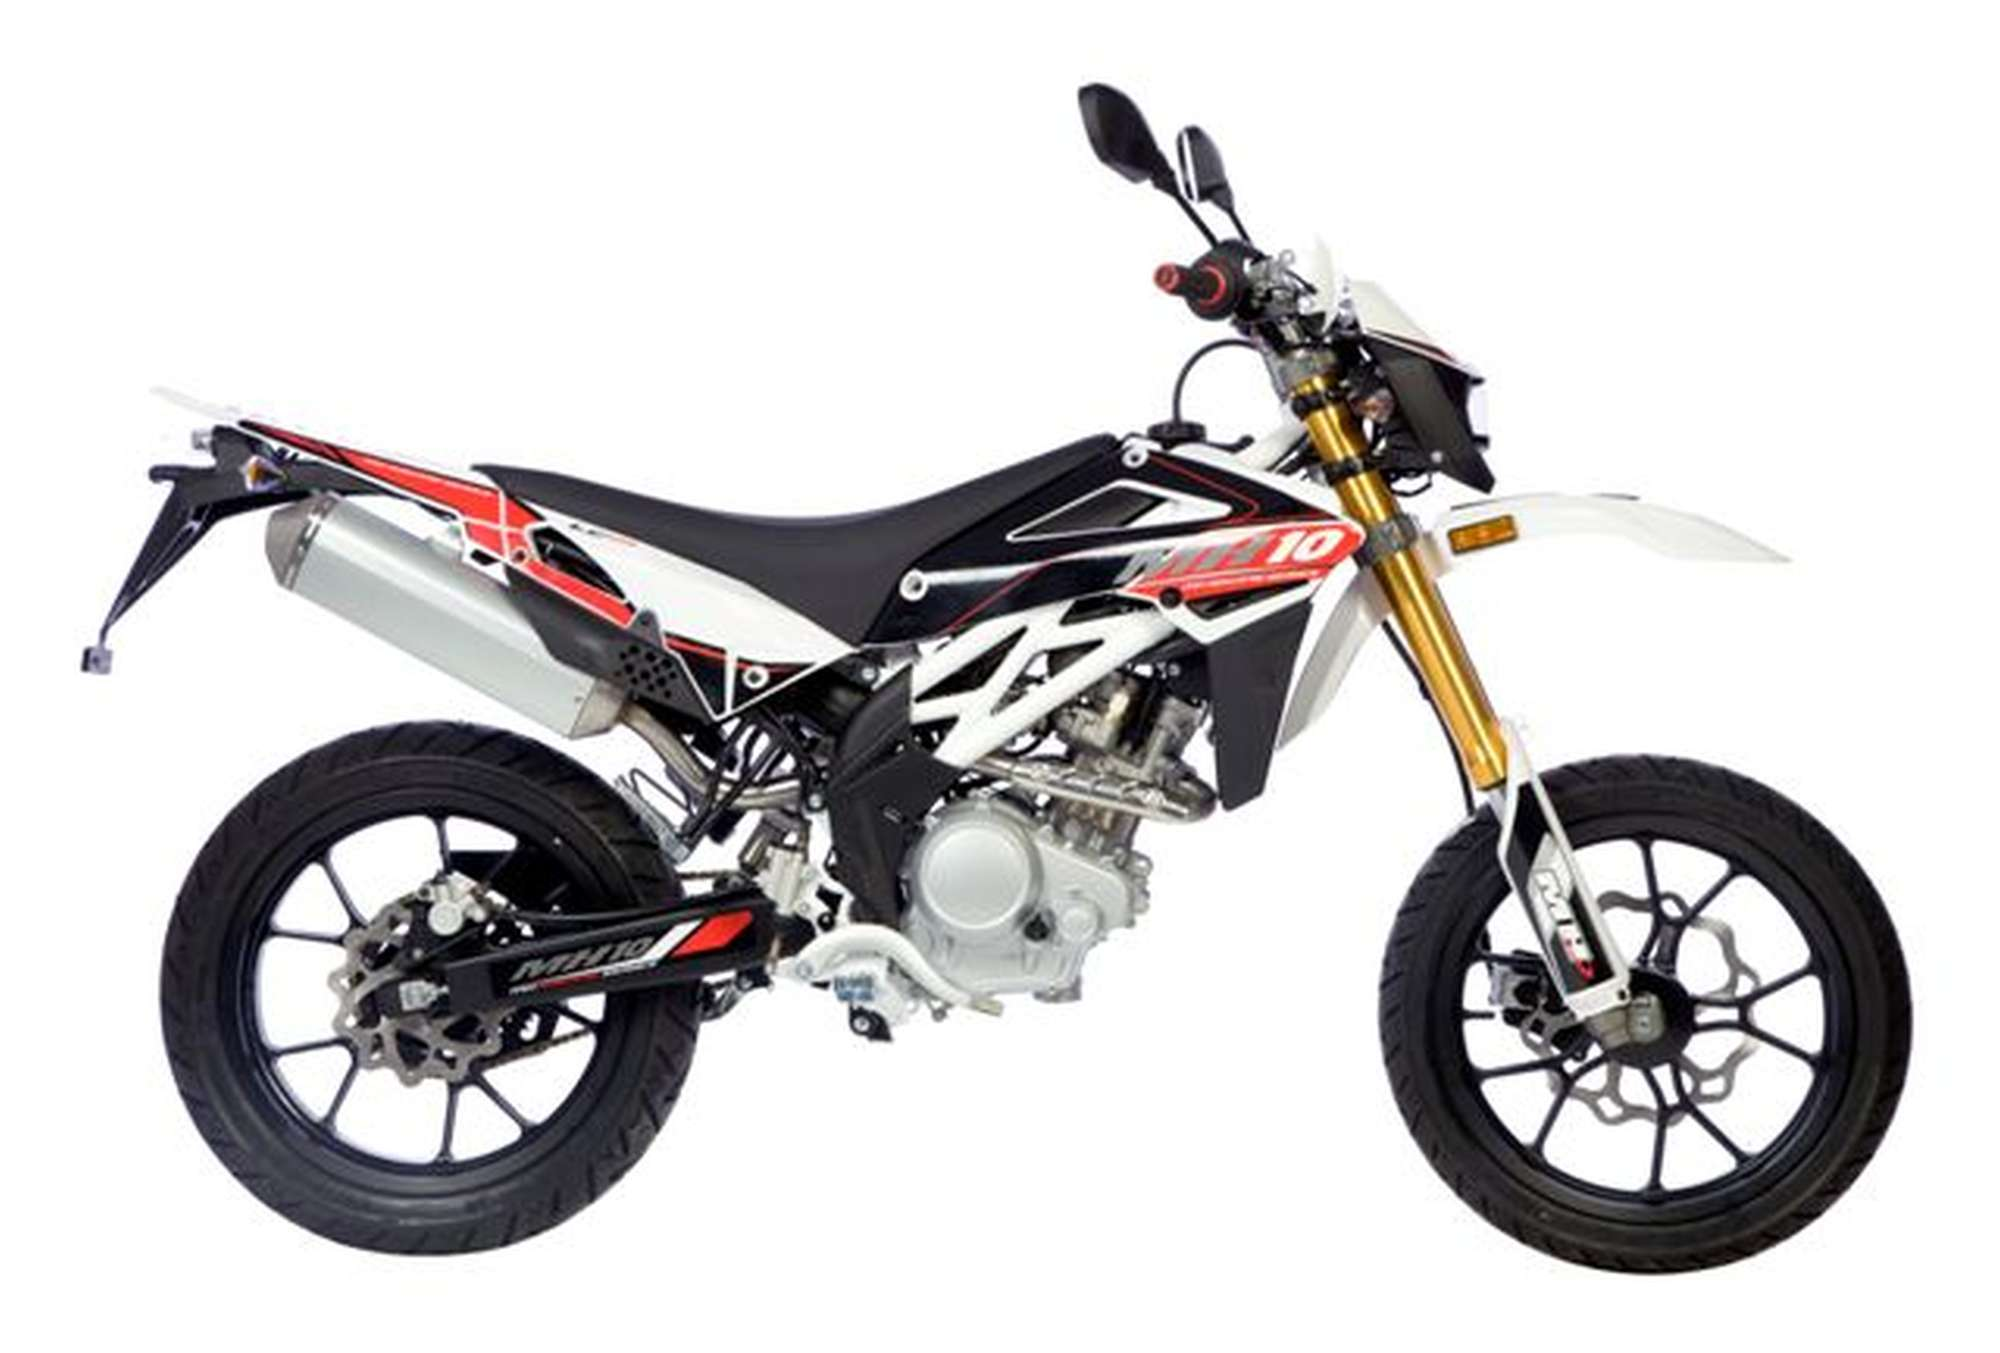 Motorhispania Ryz 50 Super Motard 2008 images #113641